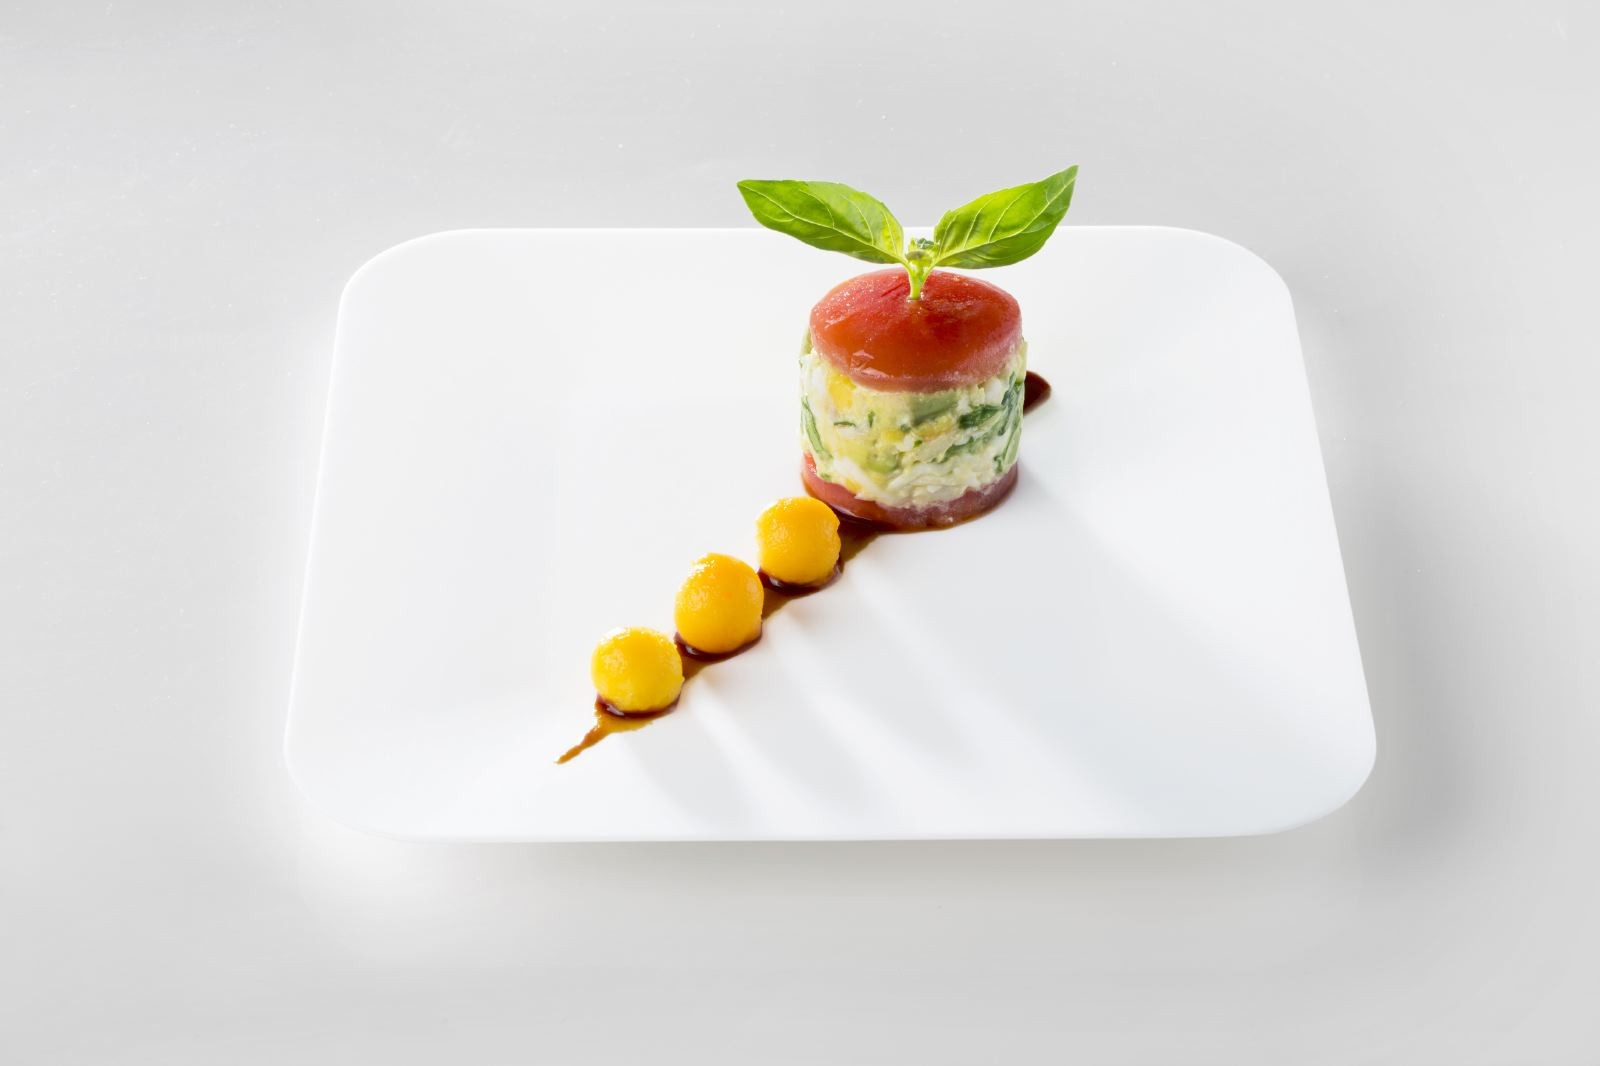 Vegetables and citrus fruits dish